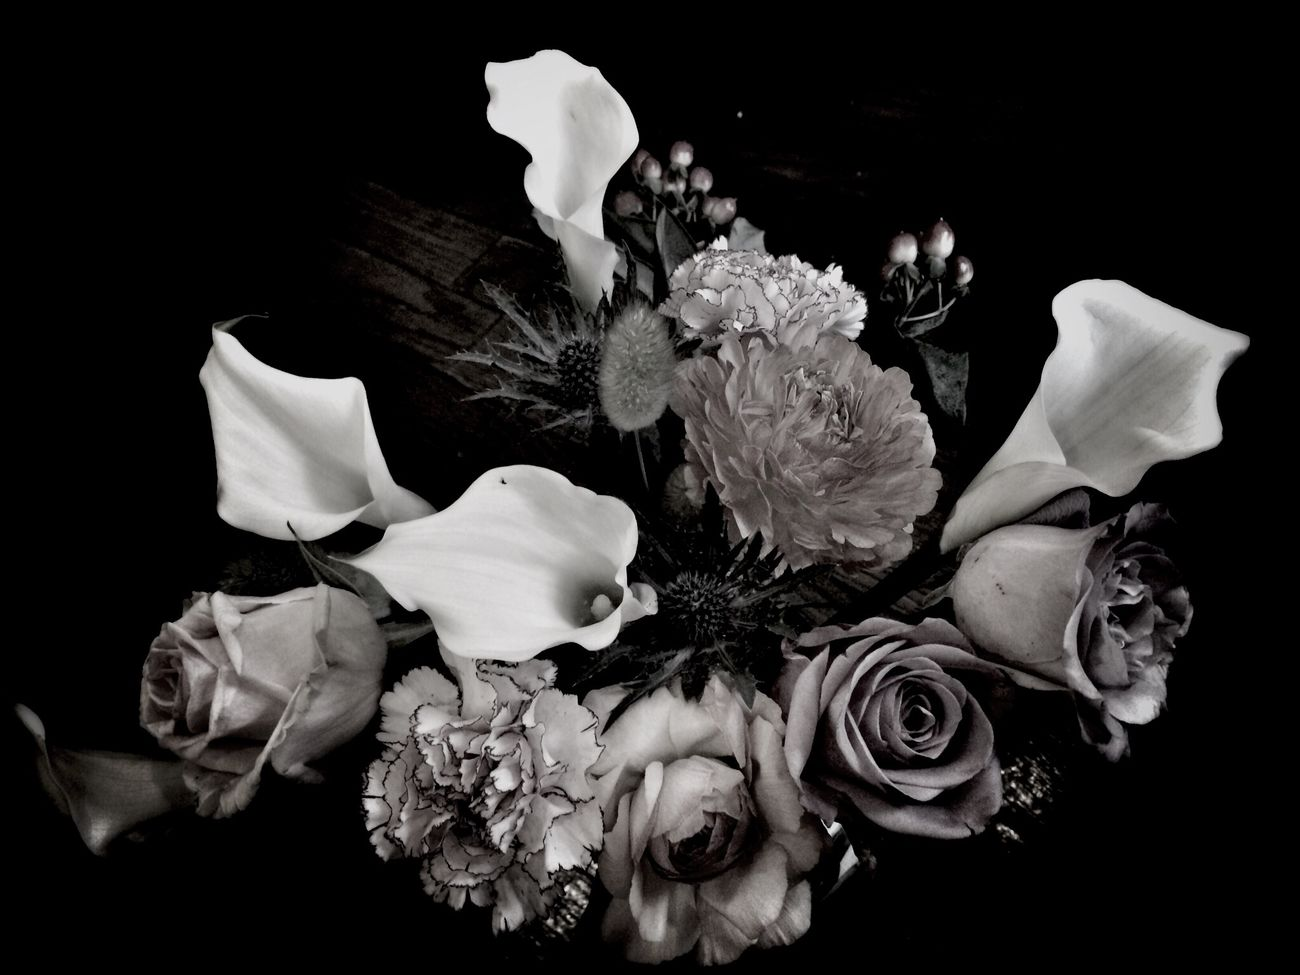 Flowers Blackandwhite Photography B/w Daily Black And White